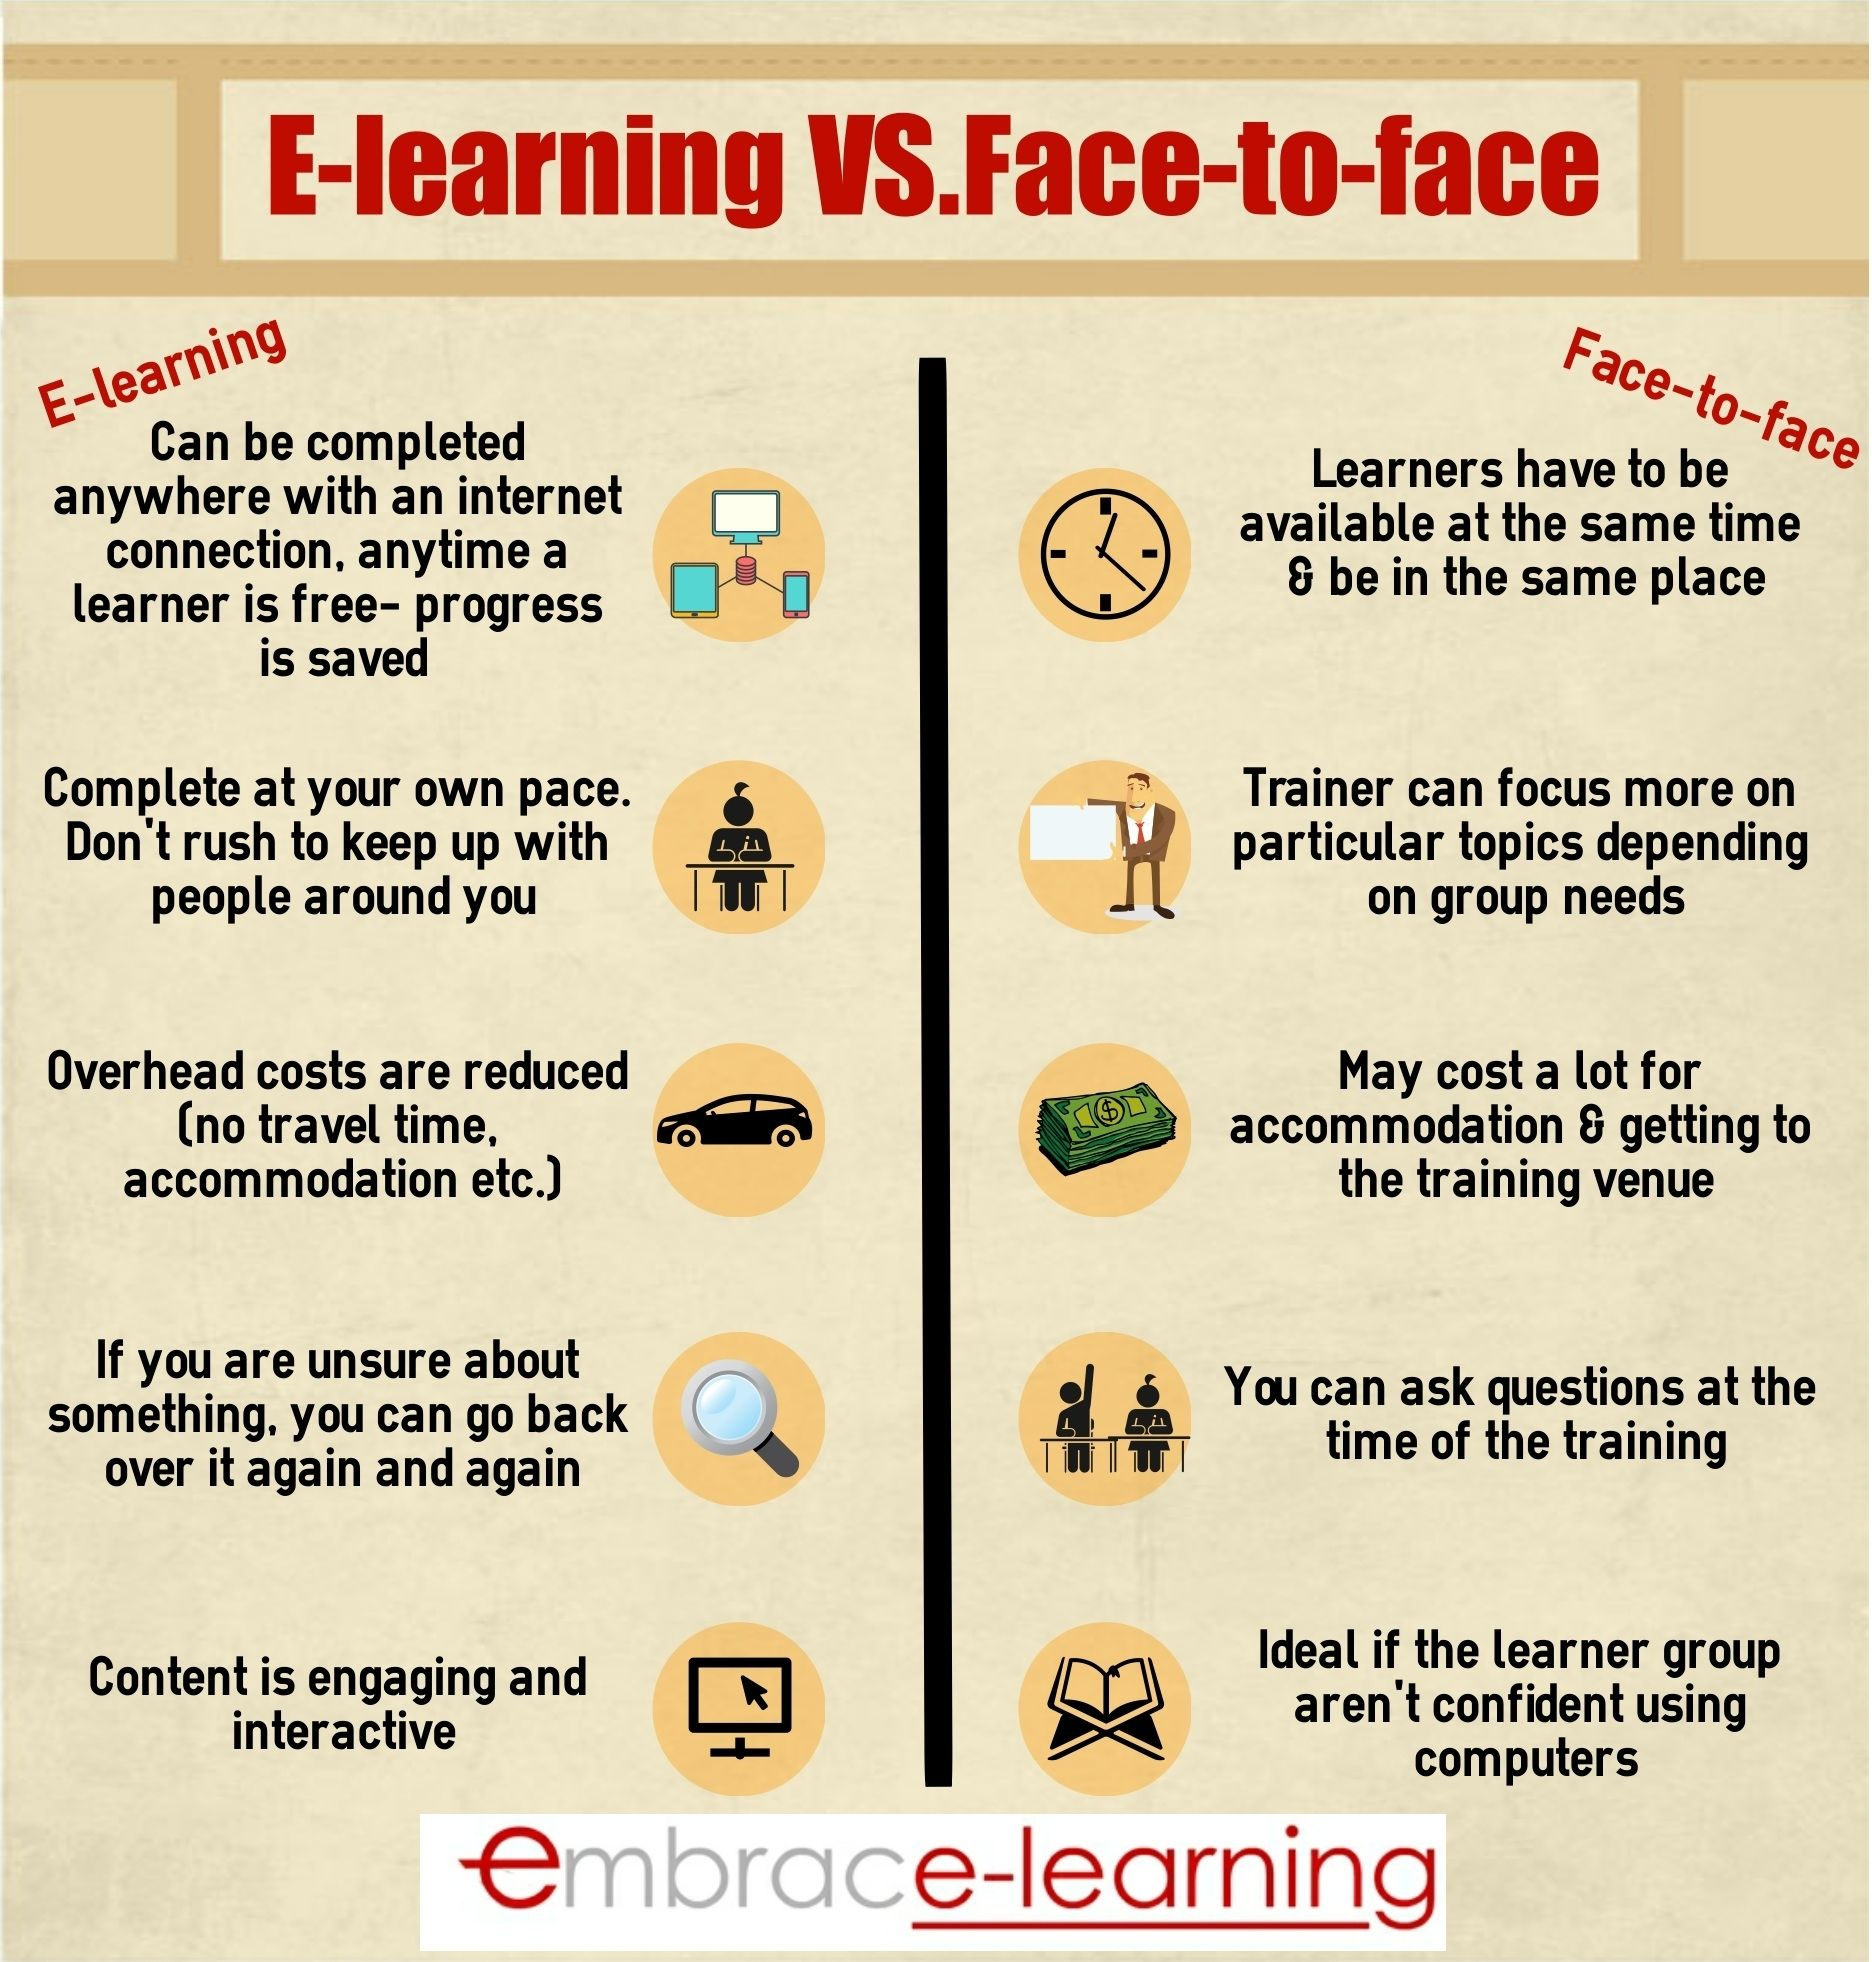 Benefits Of Elearning Vs Face To Face Traditional Classroom Learning